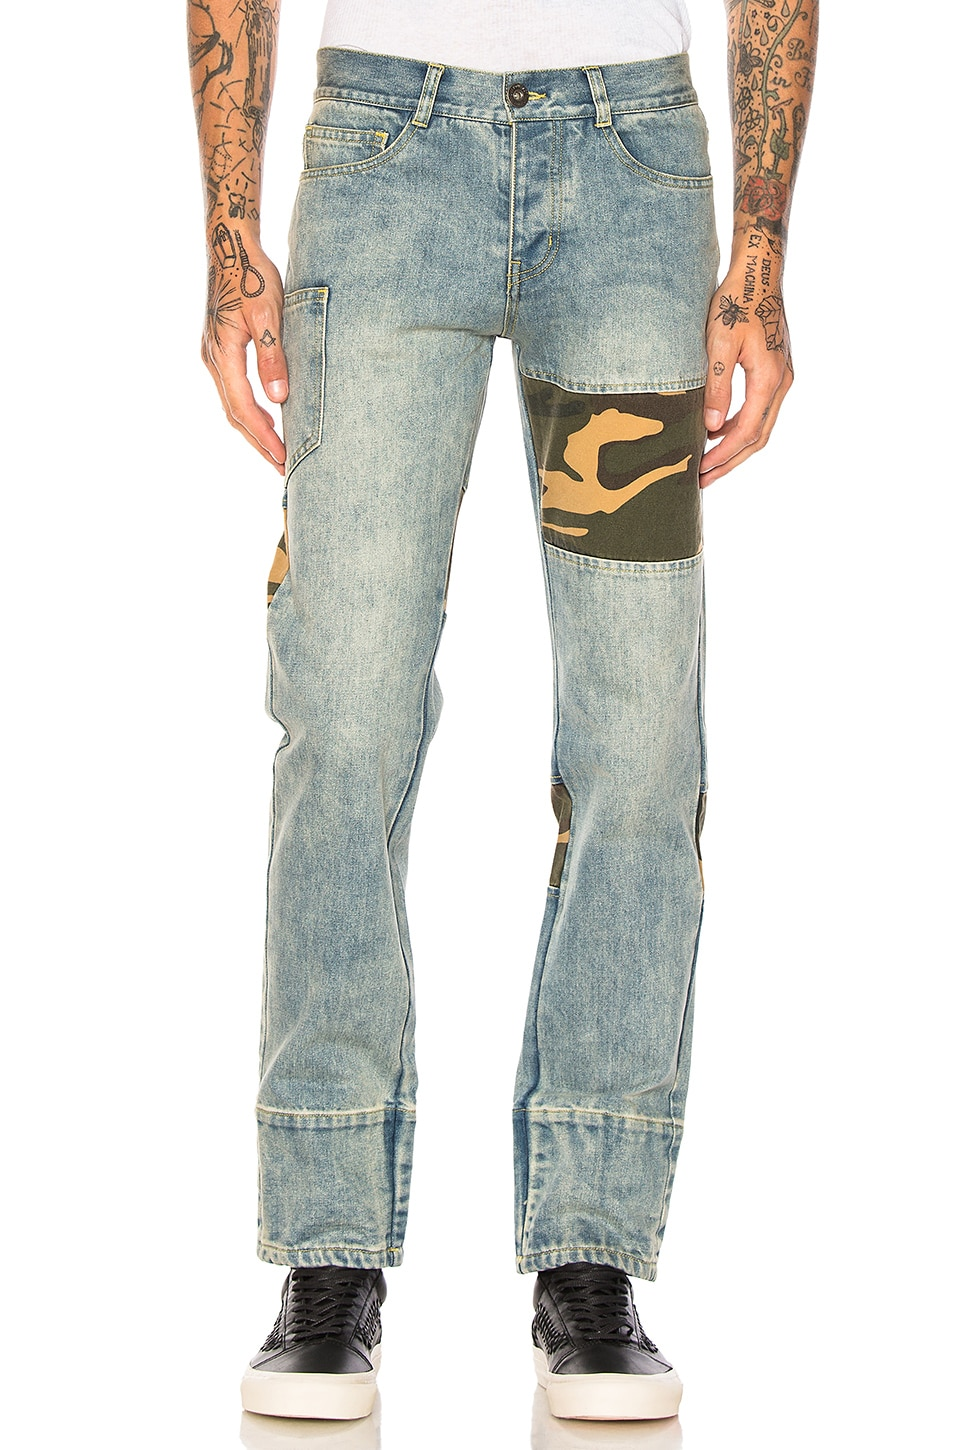 Camo Patchwork Stonewashed Jean by C2H4